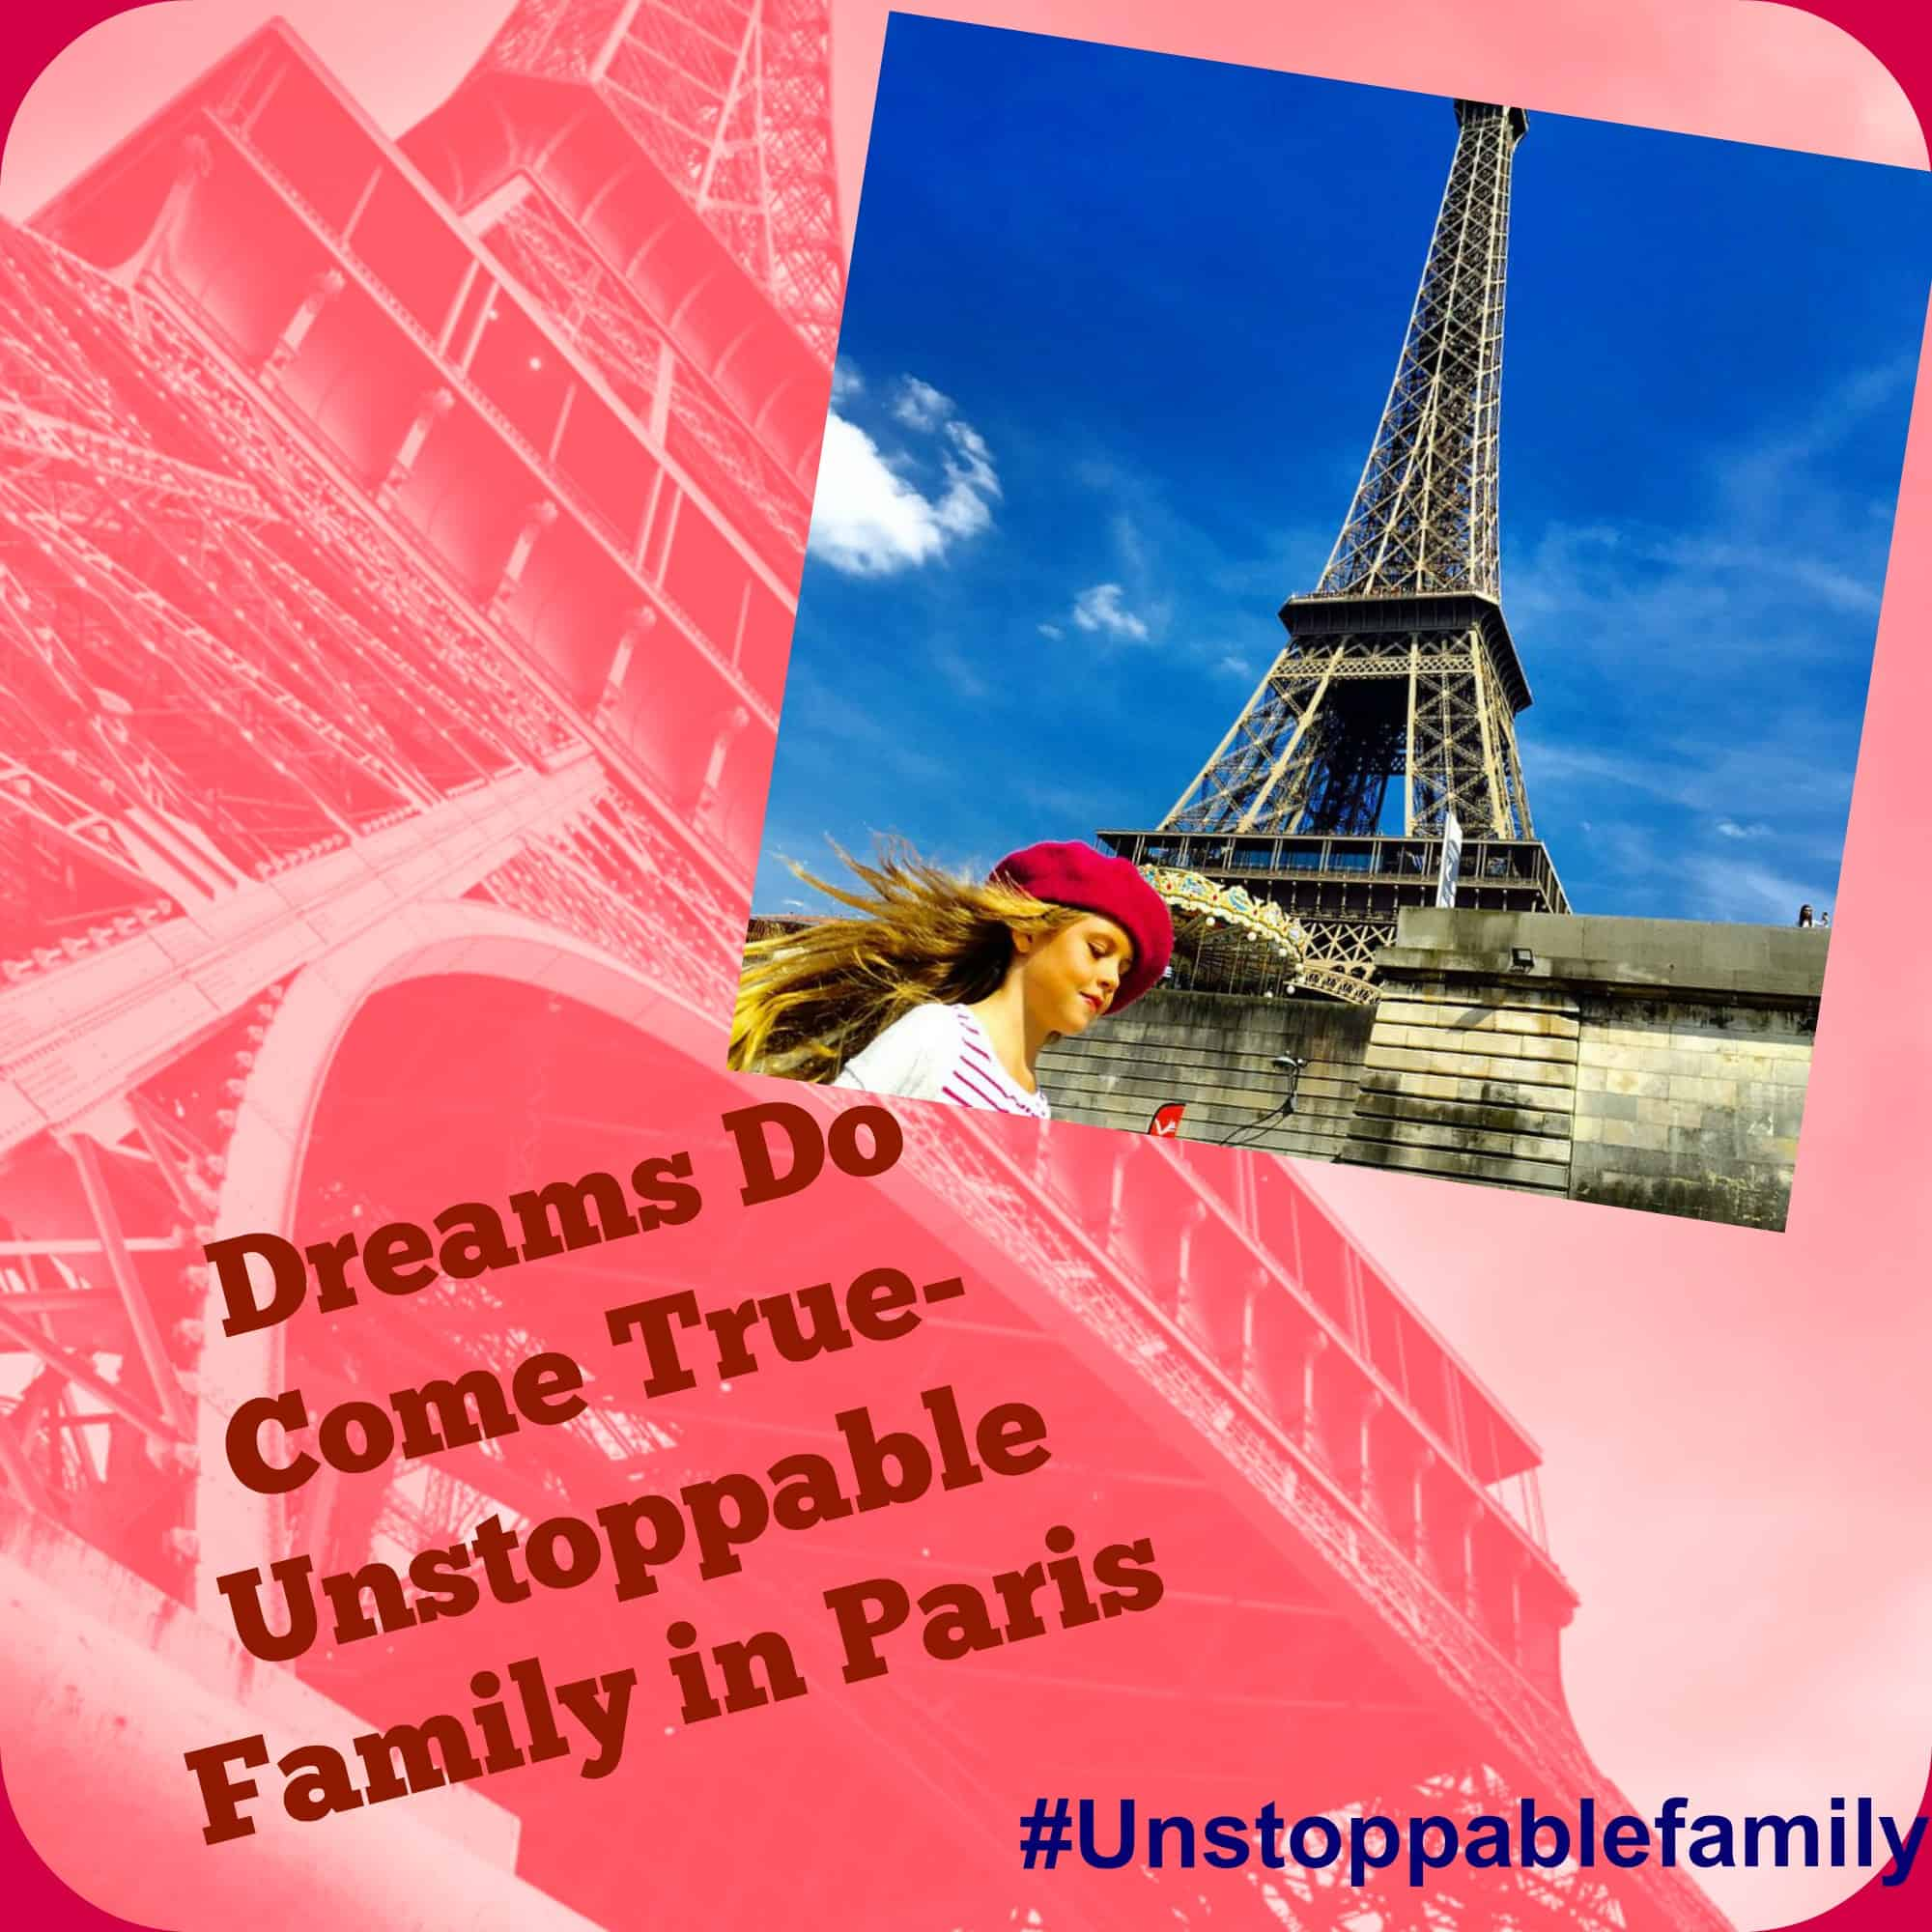 dreams do come true unstoppable family in paris